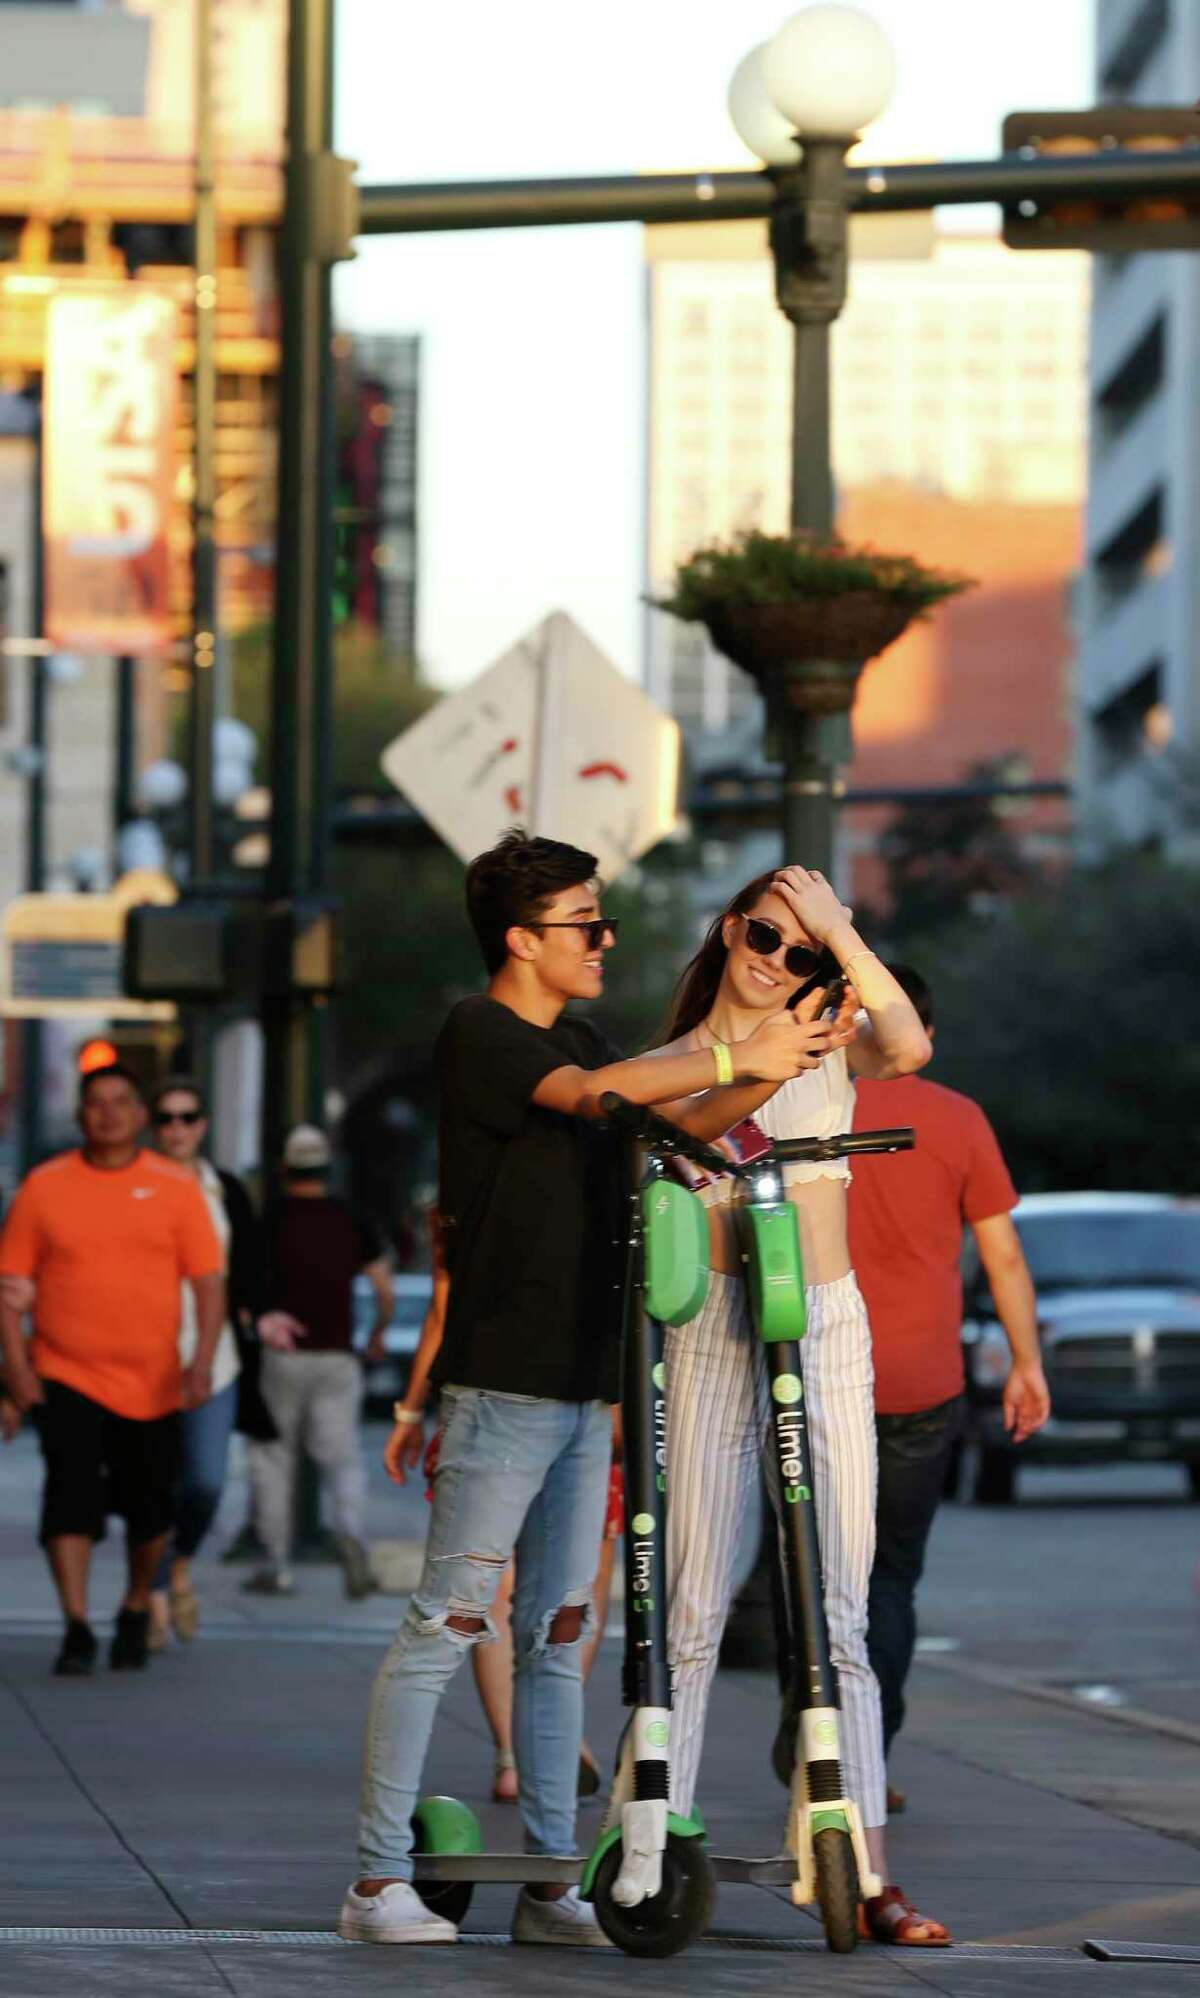 """Trent Newman, 16, and Alexa Sage, 16, stop for a selfie along Commerce Street in downtown San Antonio, Wednesday, March 13, 2019. The scooter rental comes with an 18,404 agreement that straightjackets the customer. The riders had agreed to never sue Lime, take responsibility for all accidents and damage, accept binding arbitration in lieu of any jury trial, limit Lime?•s liability in any event to only $100, waive all participation in class action lawsuits and, among a maze of other promises, affirm that they?•ve not had any drug or alcohol ?'incidents?"""" in the past seven years. They even agreed that Lime has never implied that its ?'equipment will be in good repair.?"""" Virtually every scooter company requires consent to a similar agreement before letting anyone activate one of the city?•s now-ubiquitous dockless vehicles."""